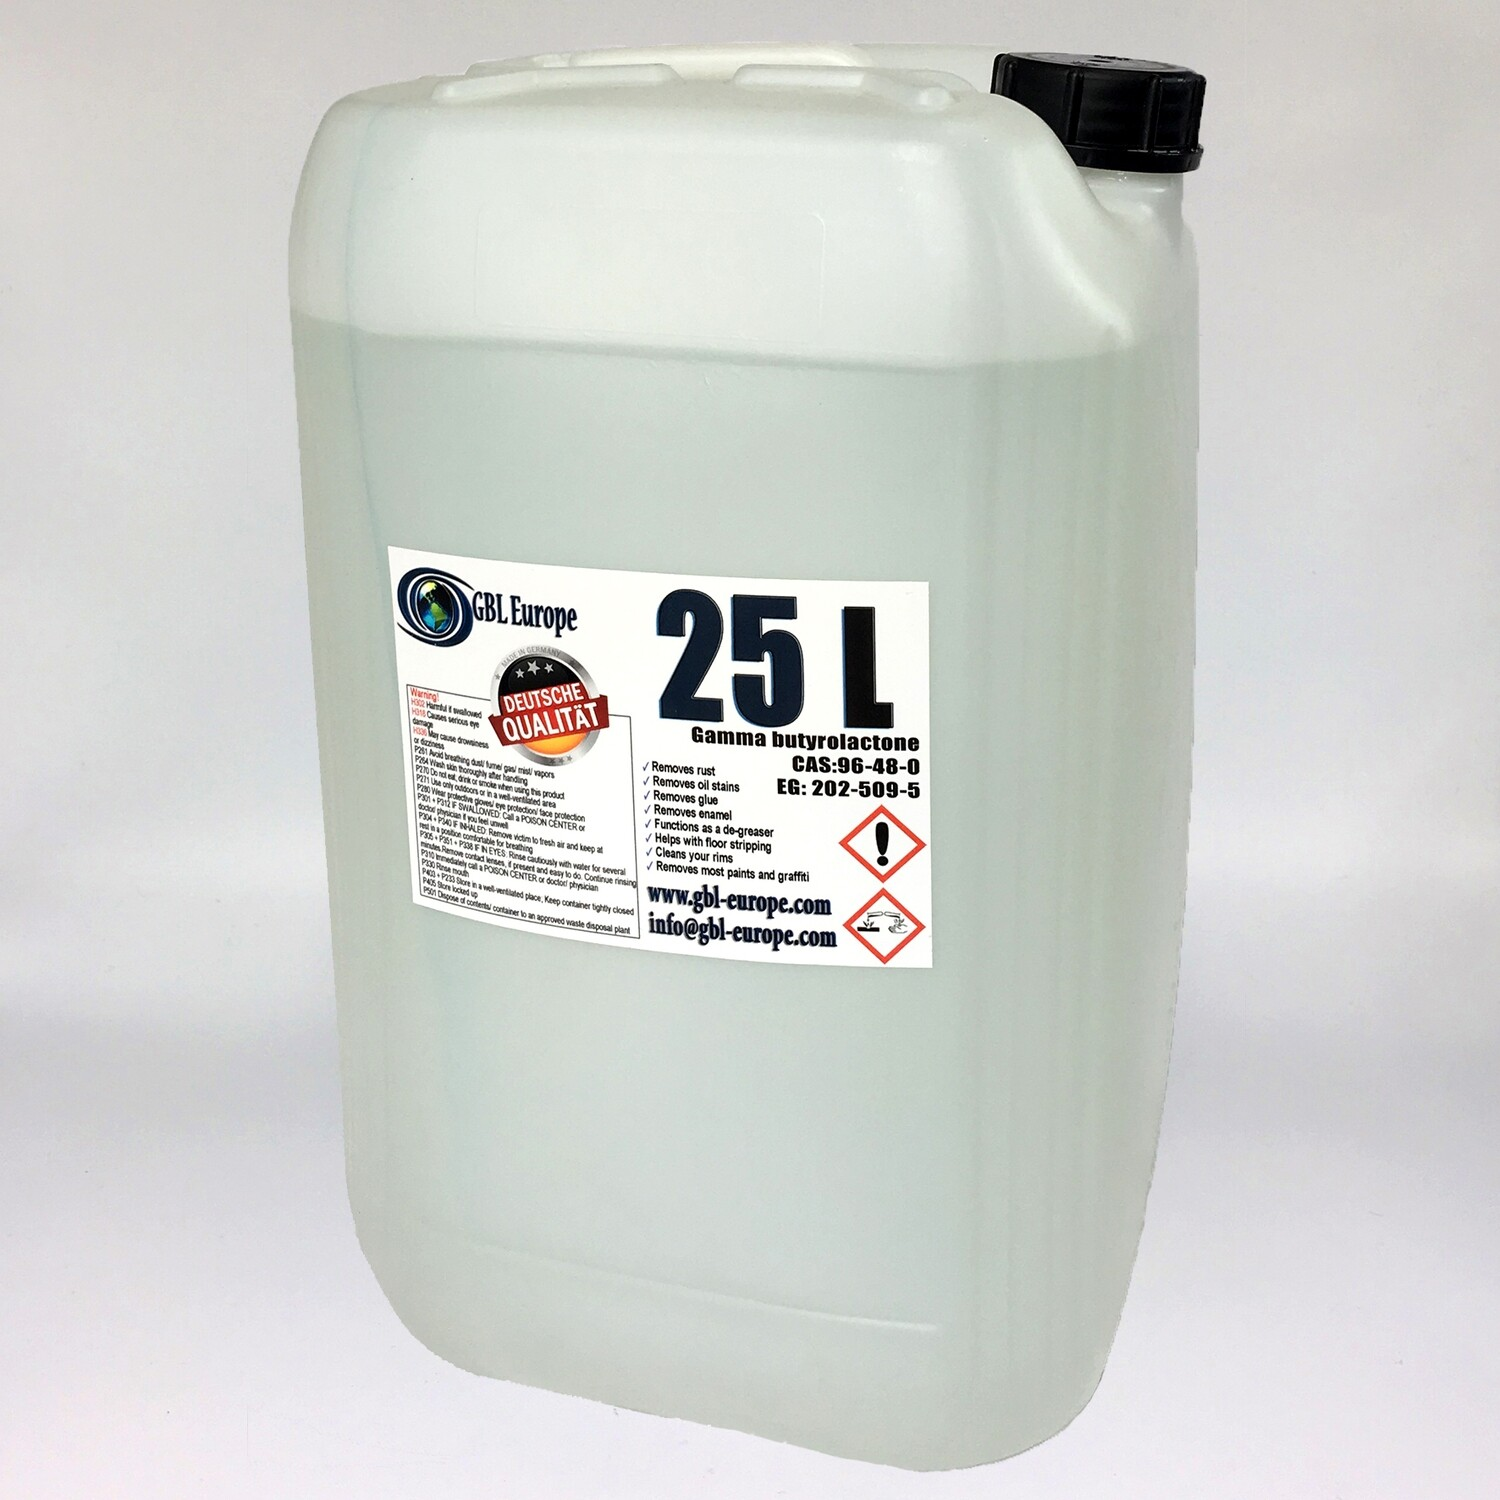 Multi Remover 25.000 ml Pharma Grade German Quality Canister + with every order 1x 500 ml technical grade Free!